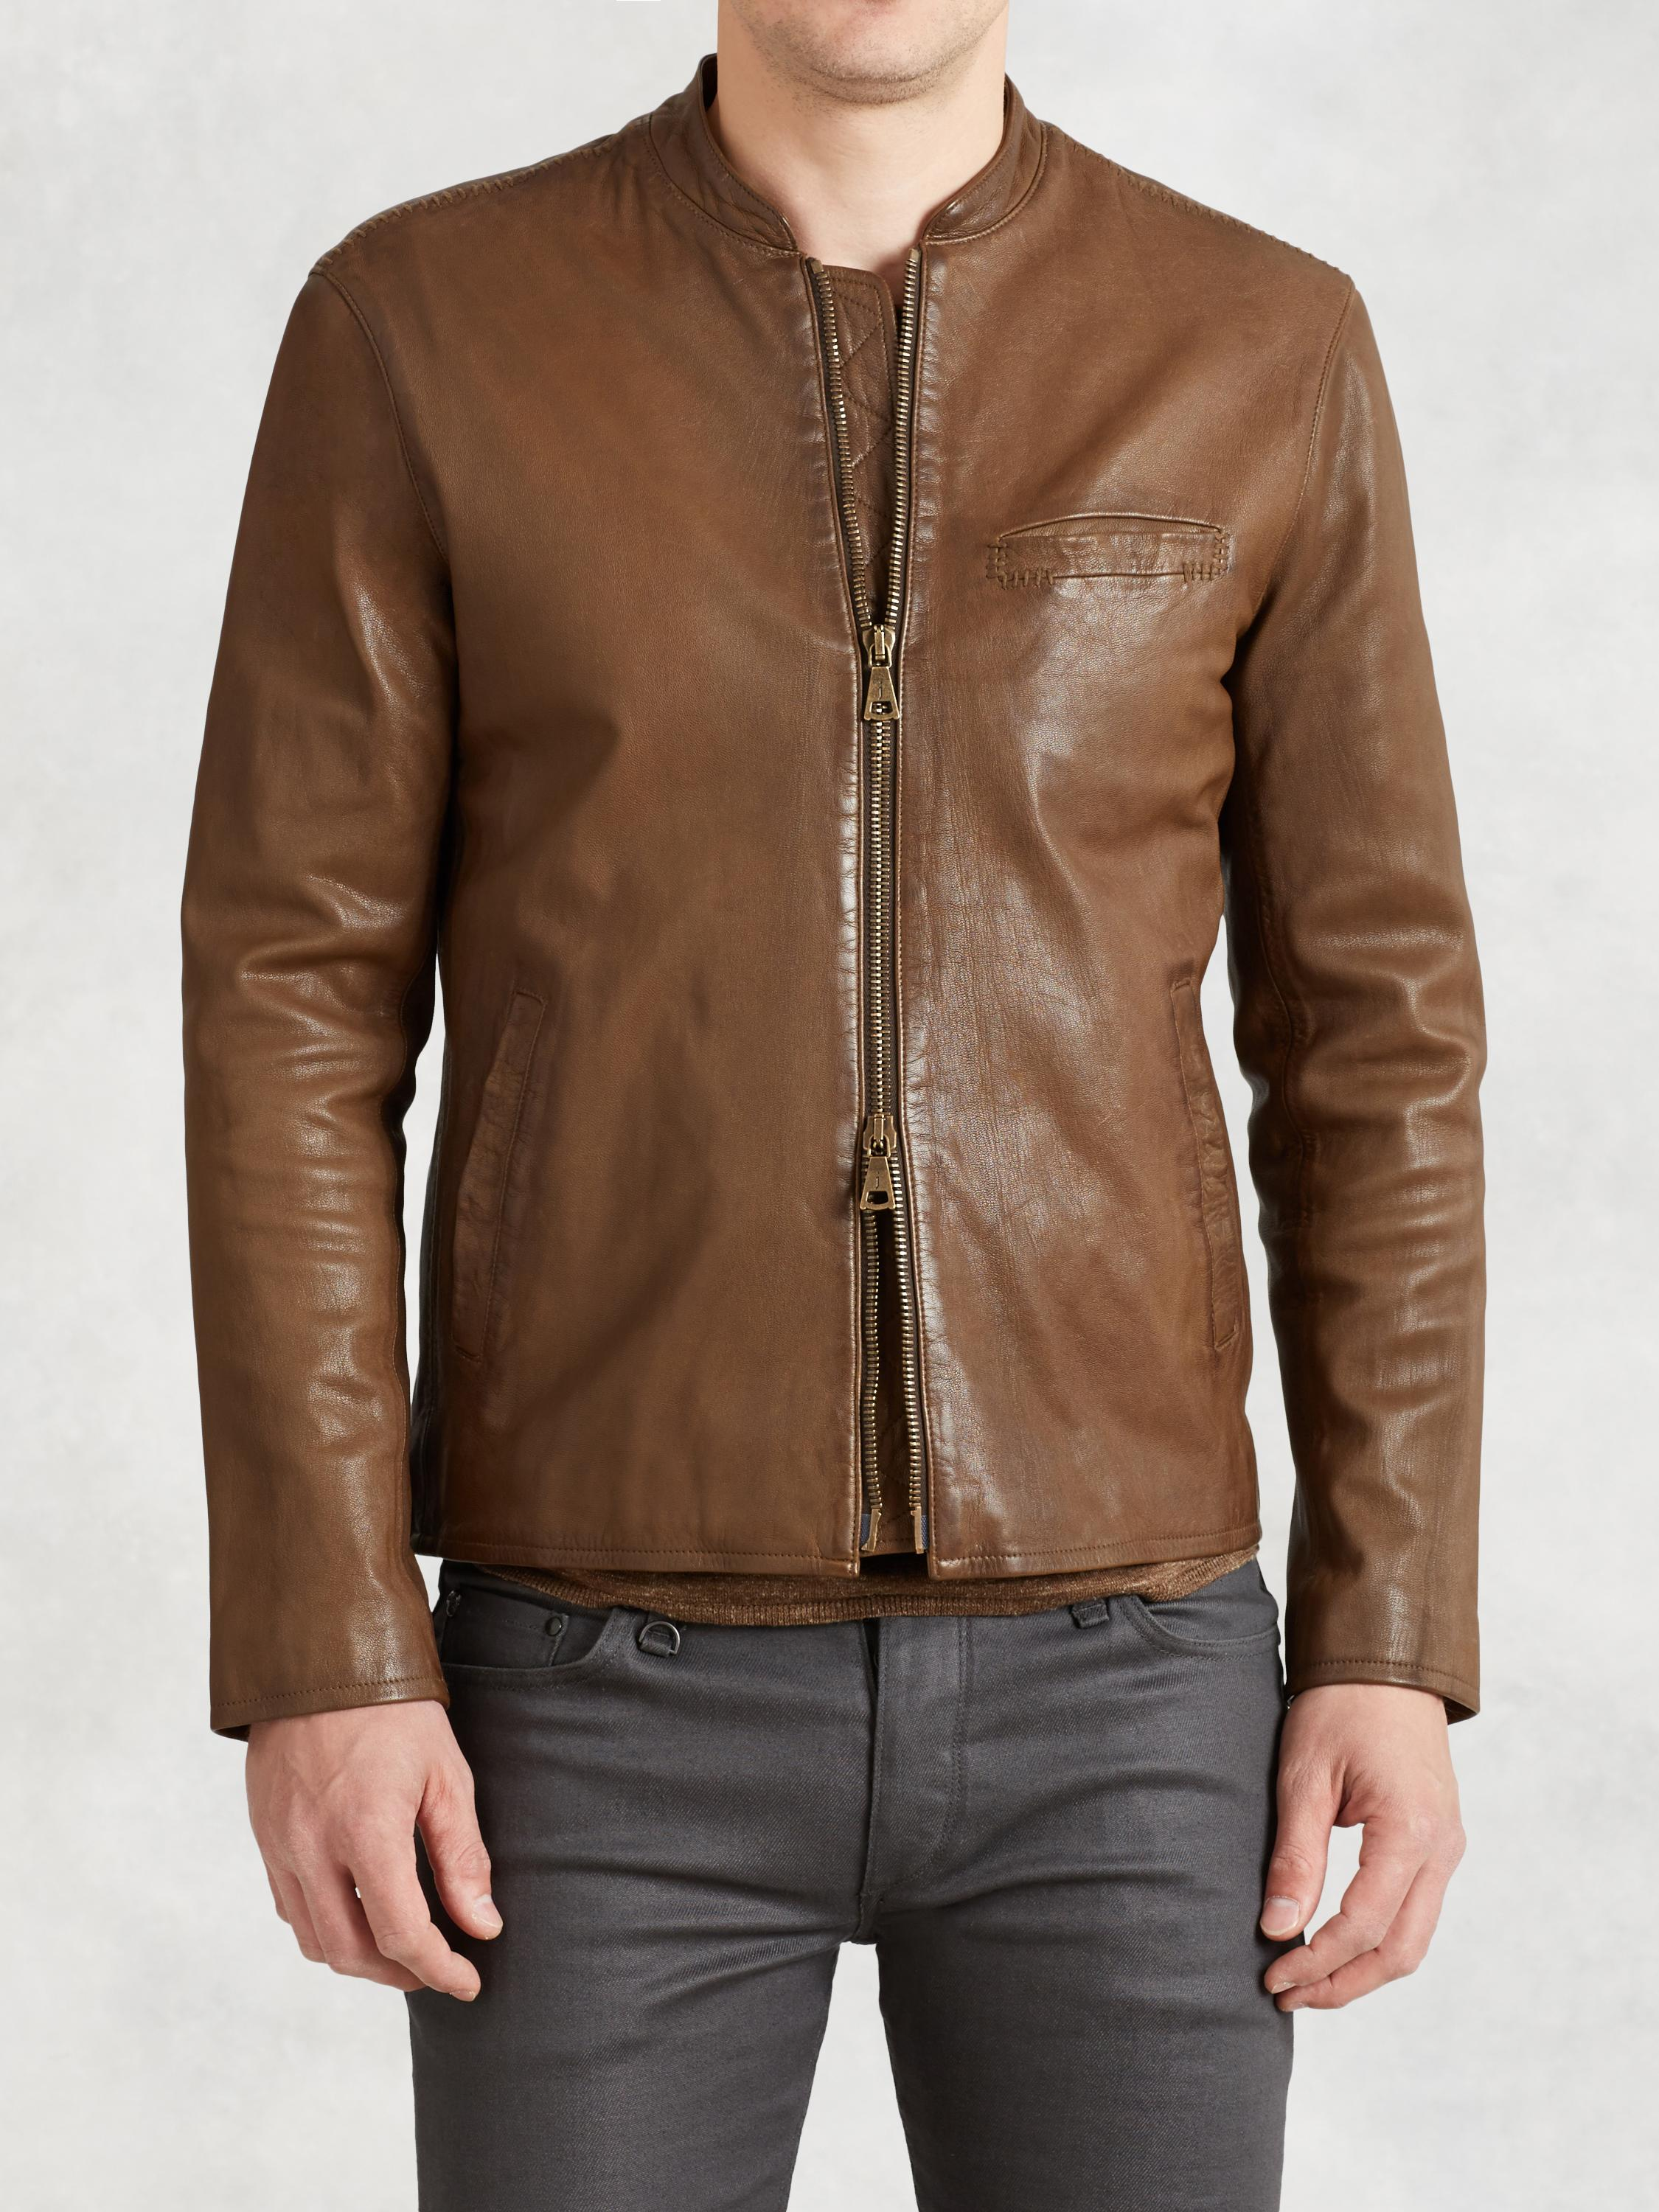 Repair Stitch Leather Jacket